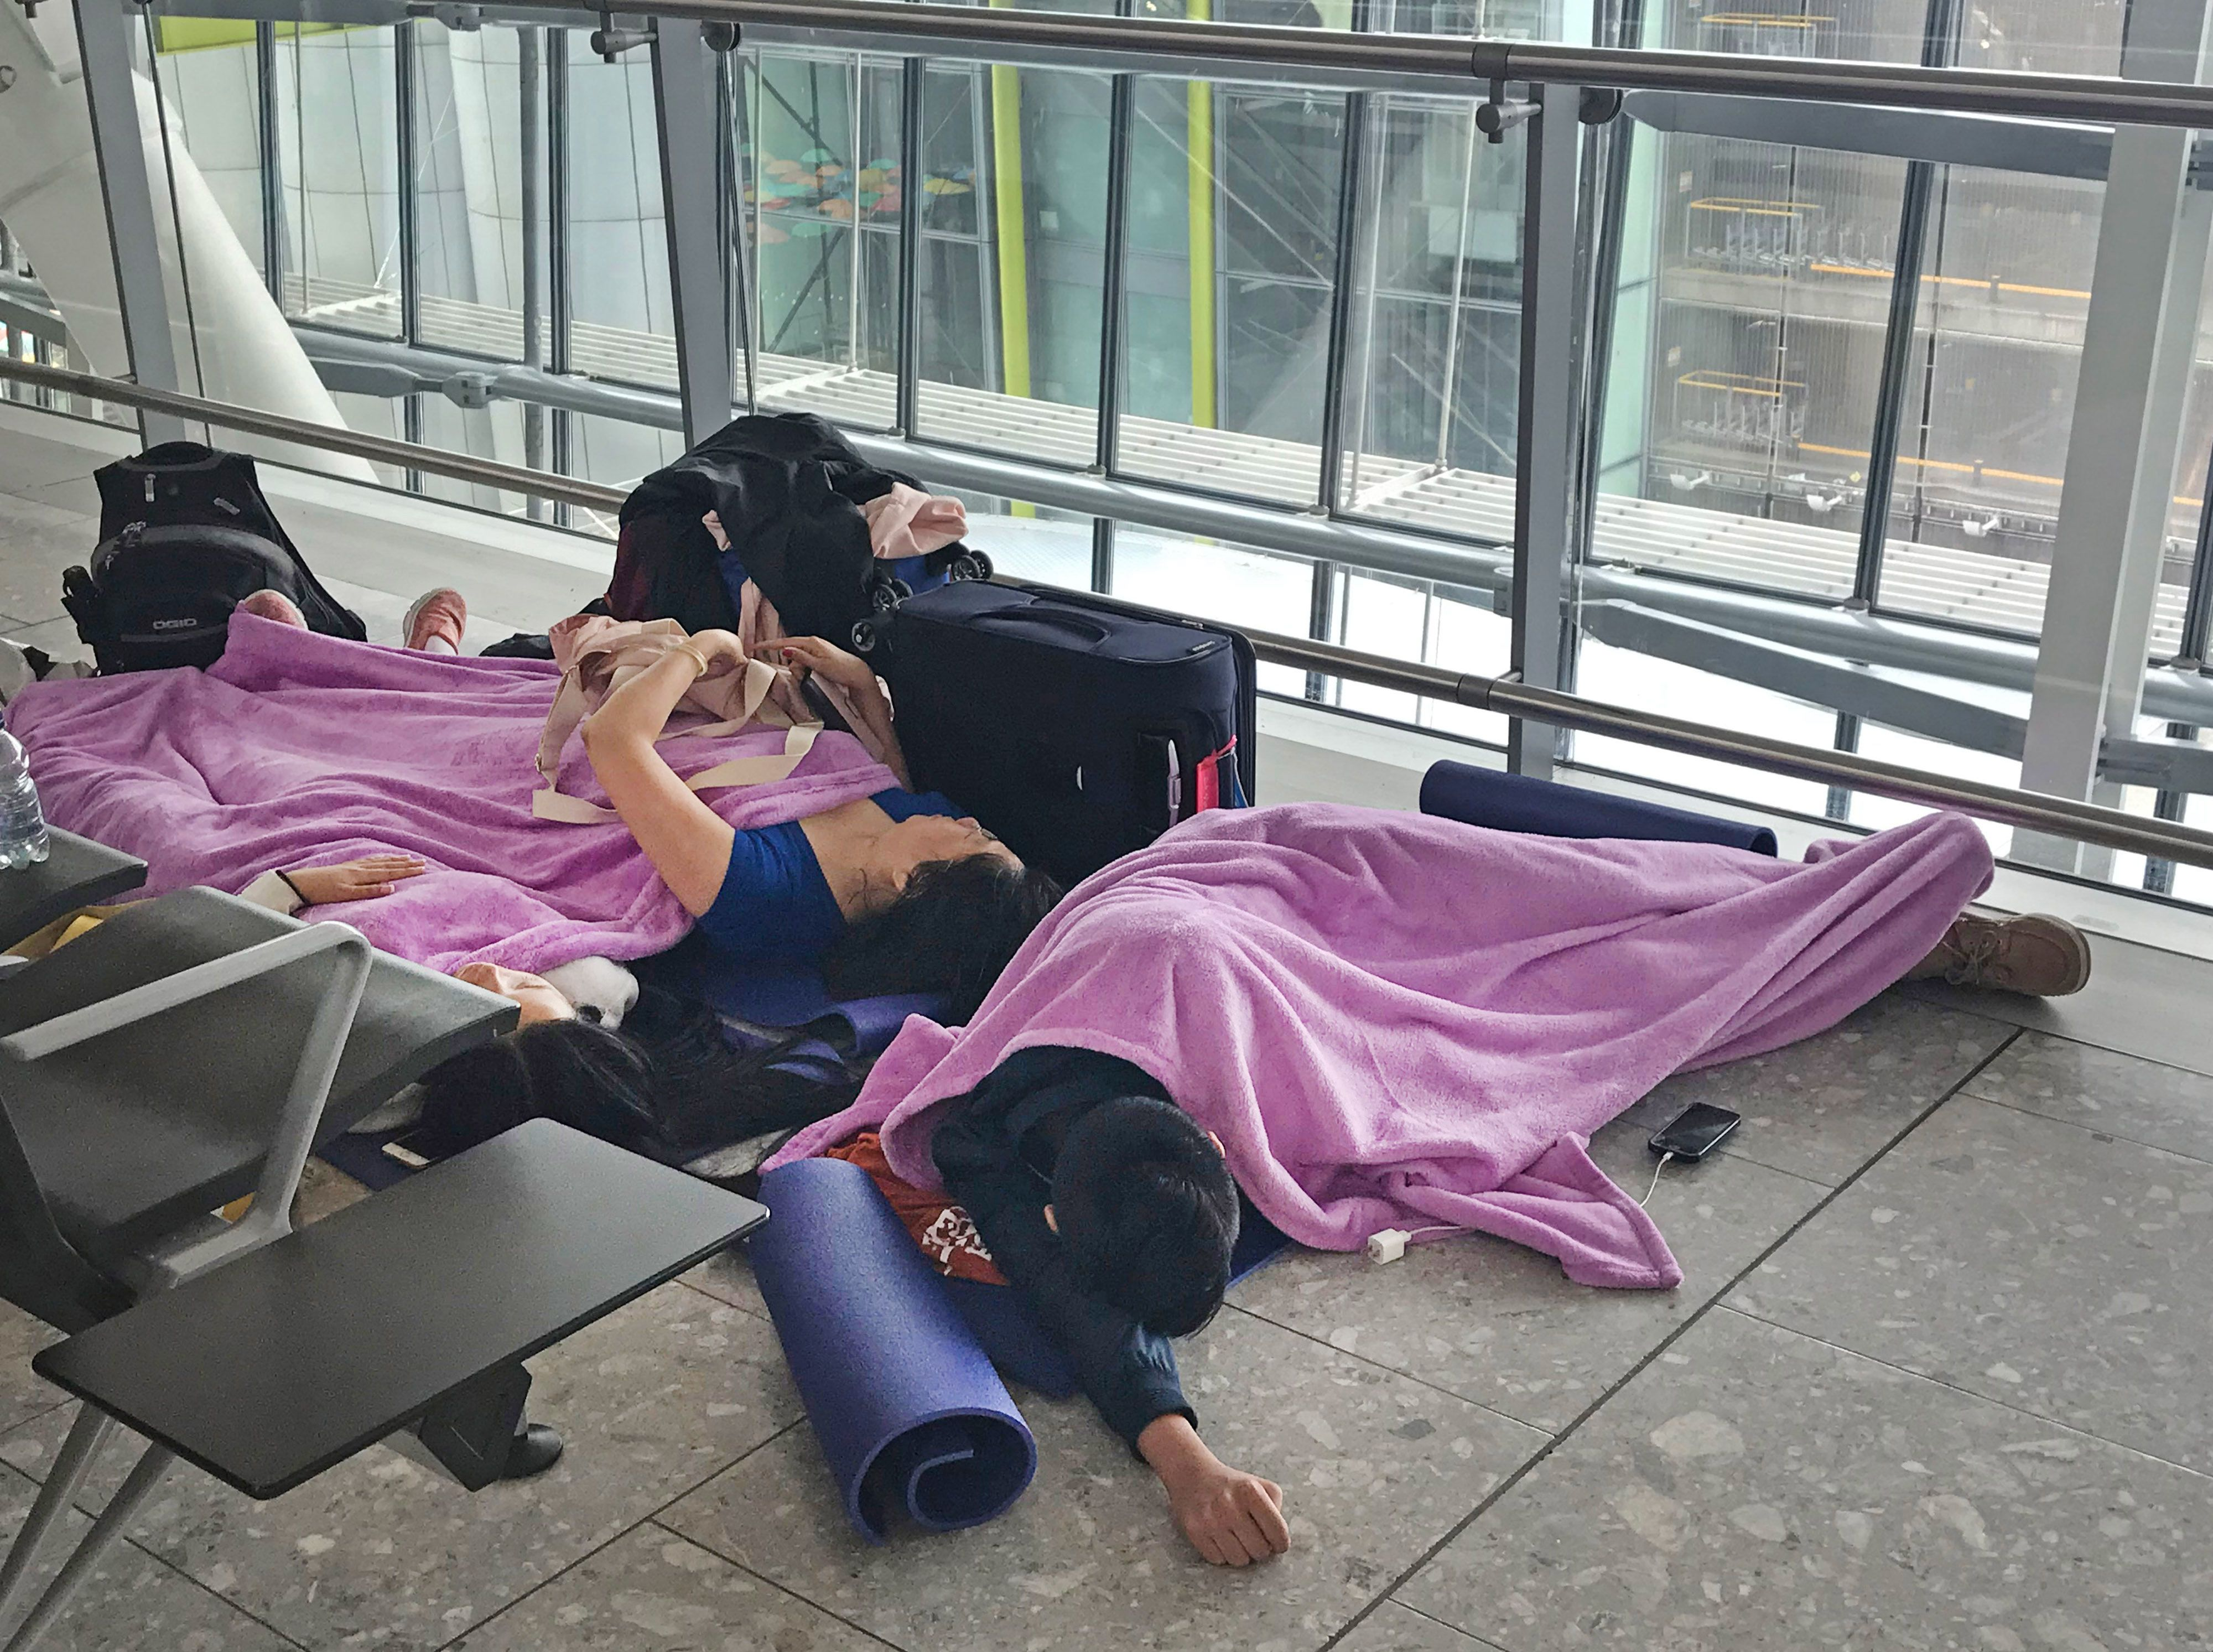 Scorching heatwave causes flight and railway delays in Europe